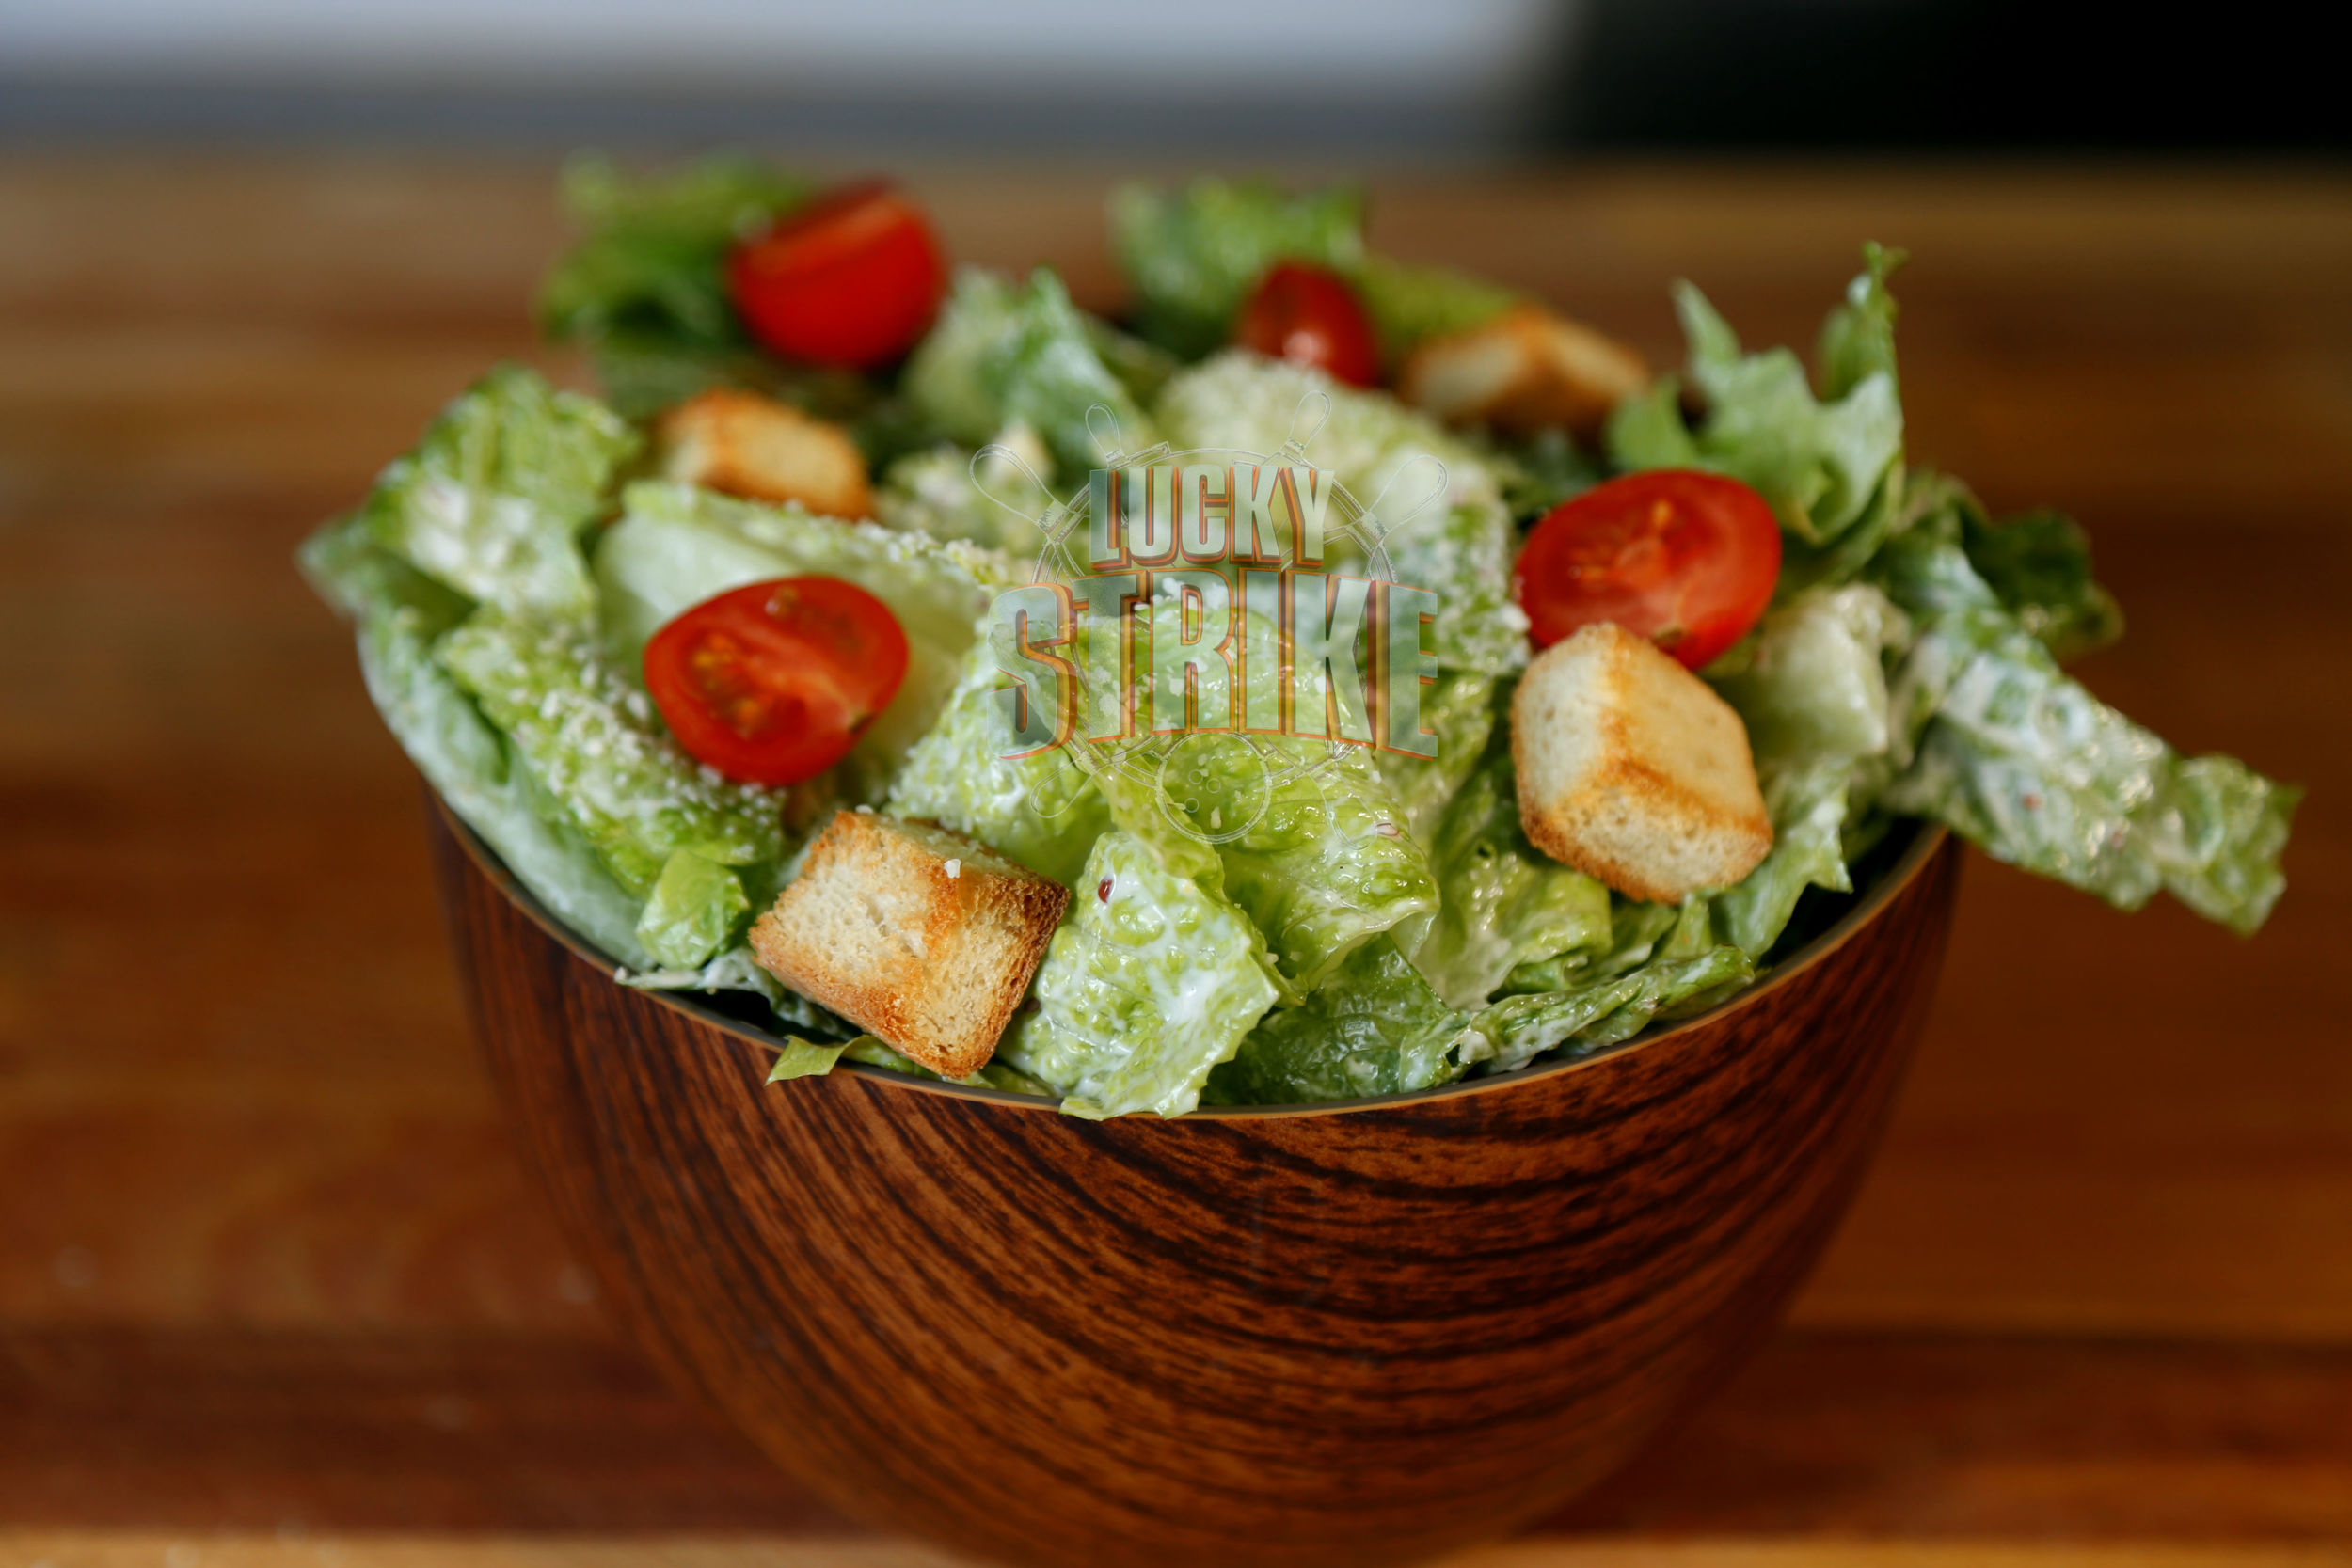 CEASAR SALAD                                                            28   A classic mix of freshly tossed romaine lettuce, parmesan cheese, croutons, cherry tomatoes, house dressing & grilled chicken breast